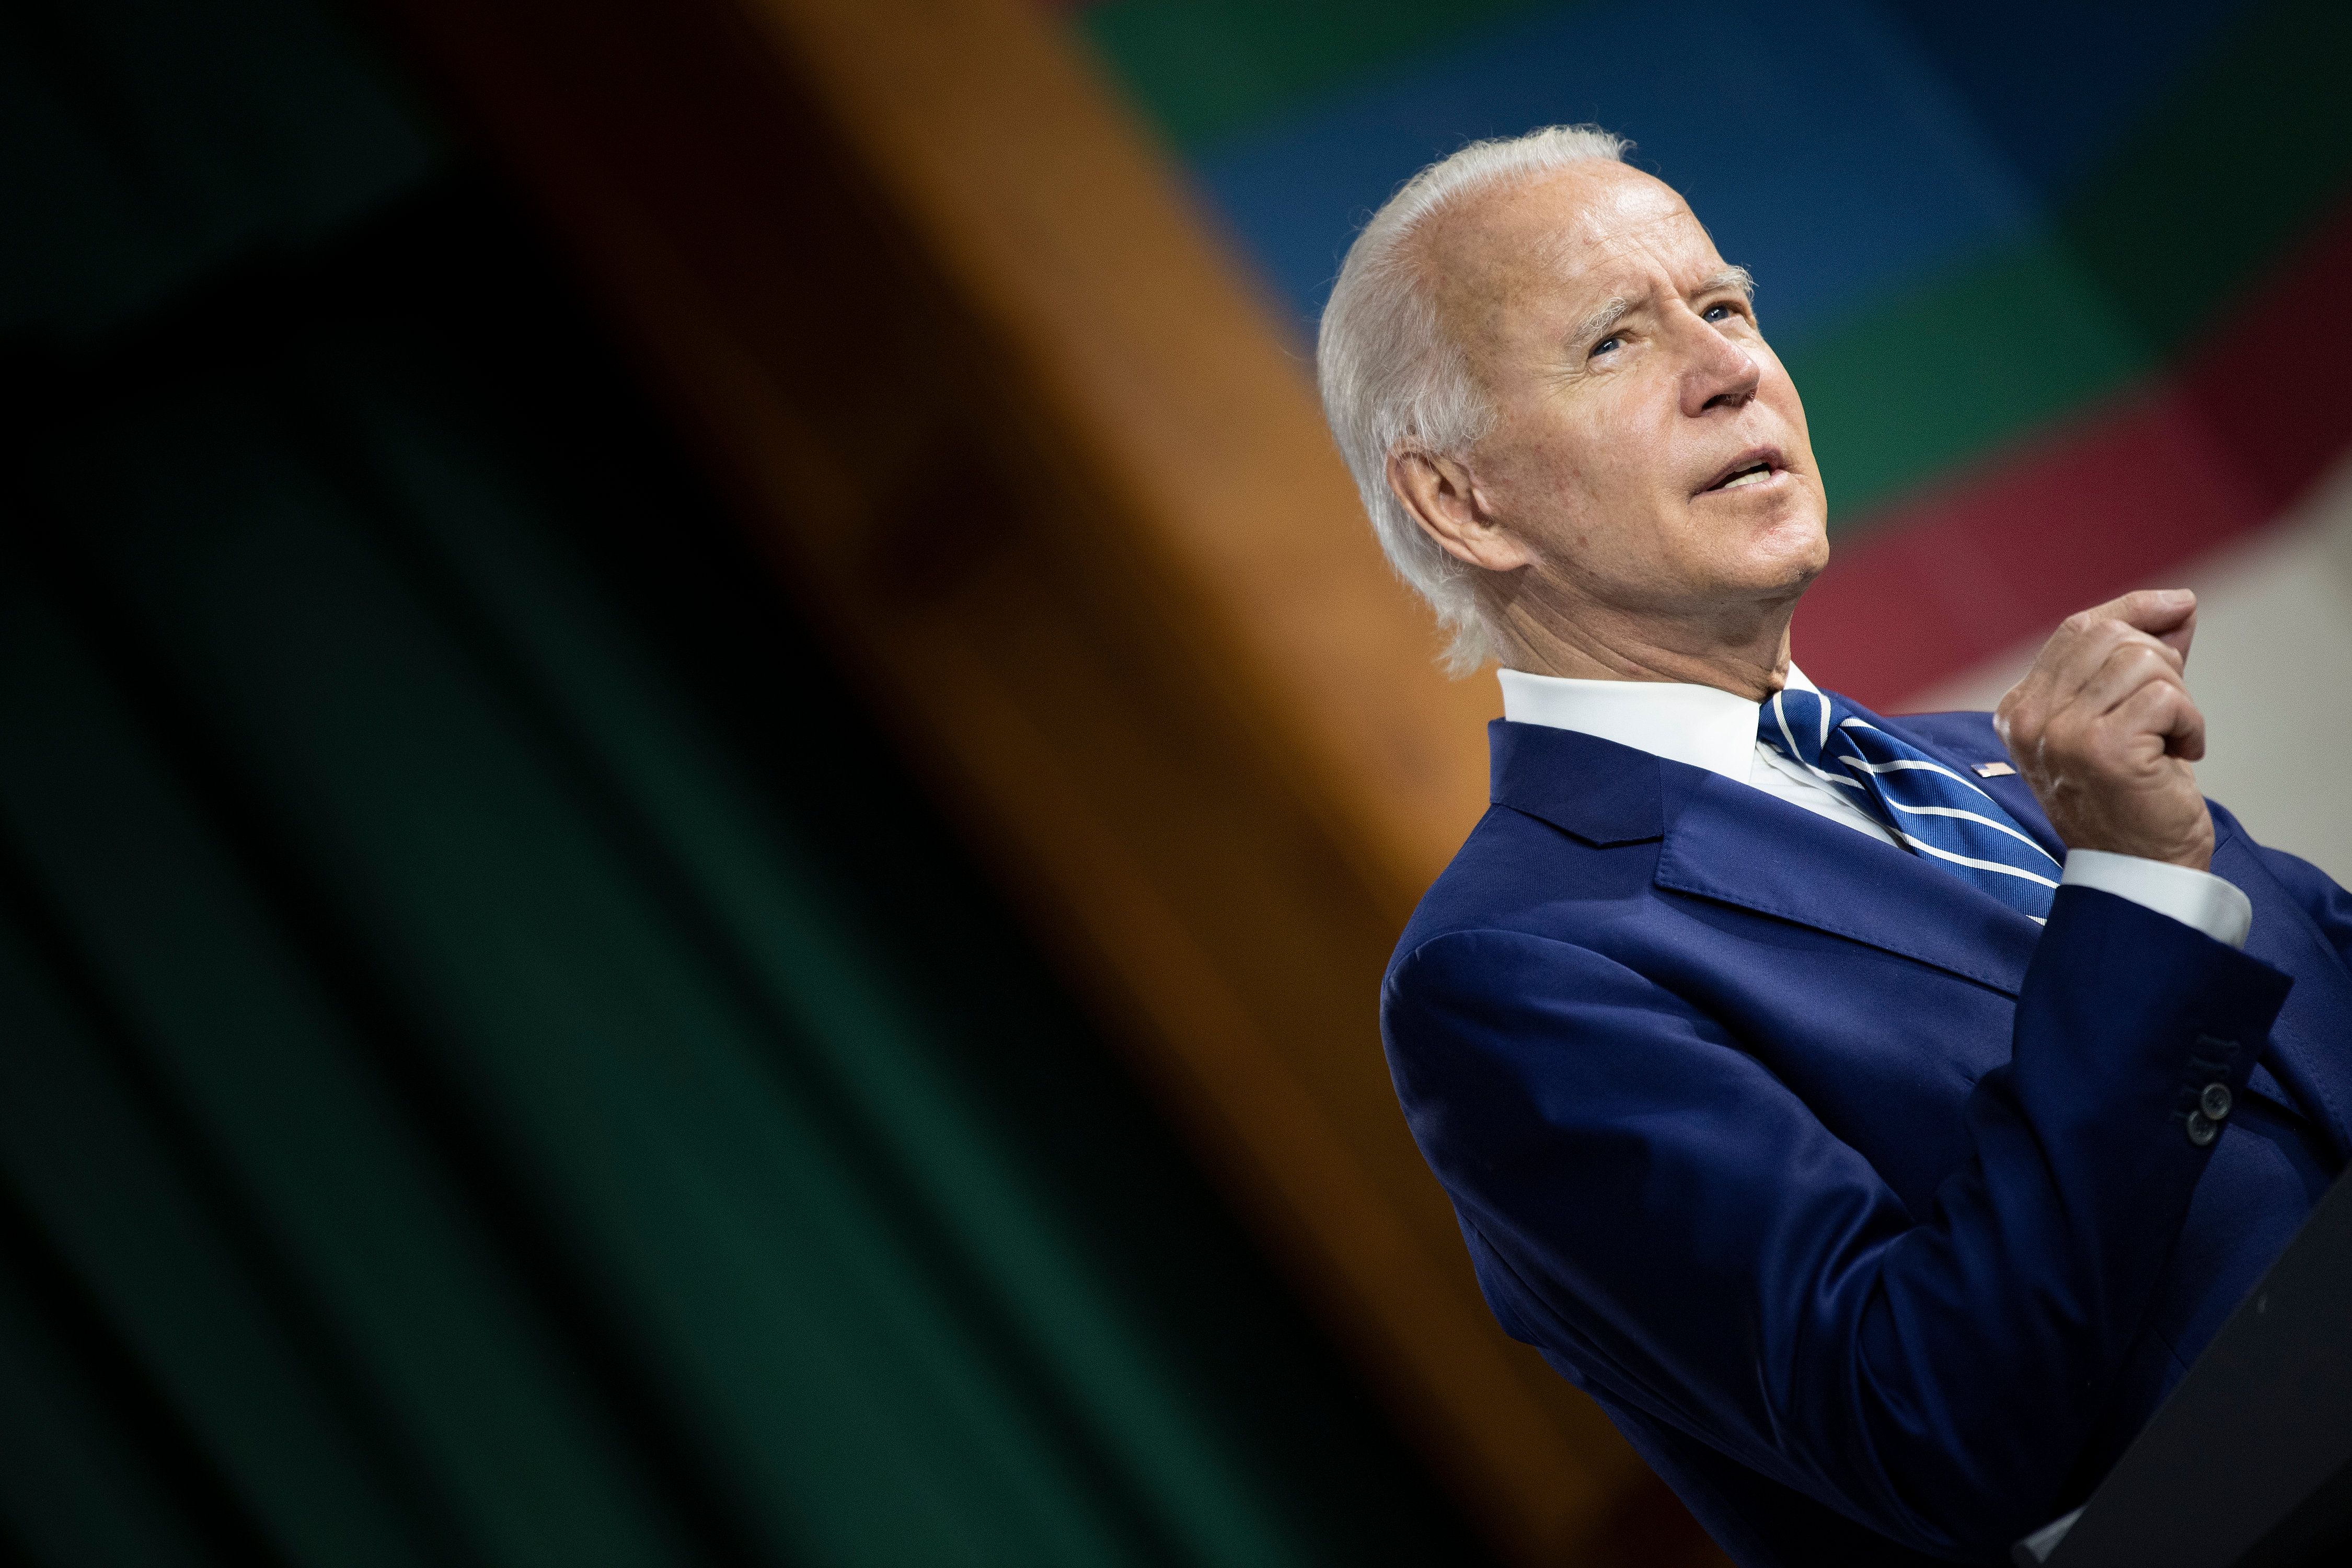 Joe Biden Is Blowing a Big Moment for Medicare thumbnail